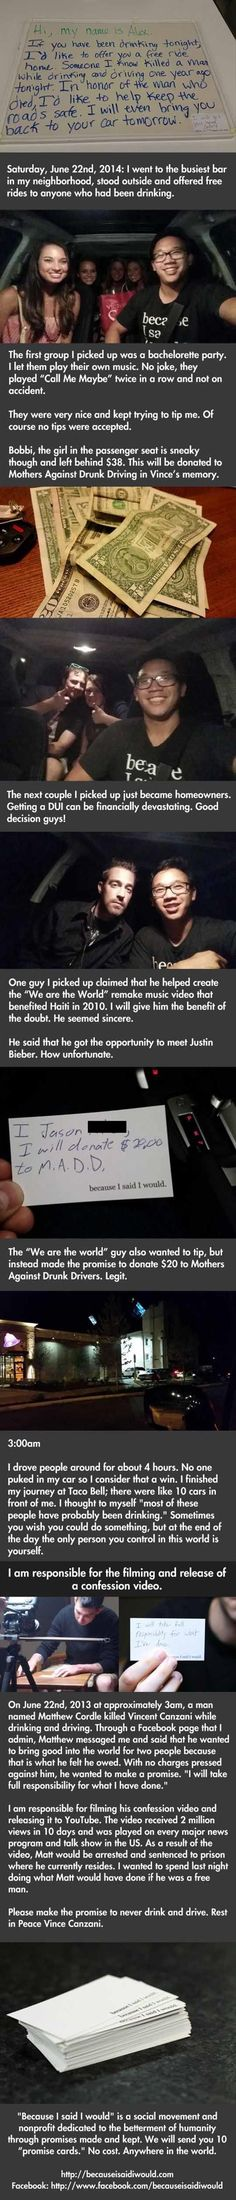 My faith in humanity has been restored a little more